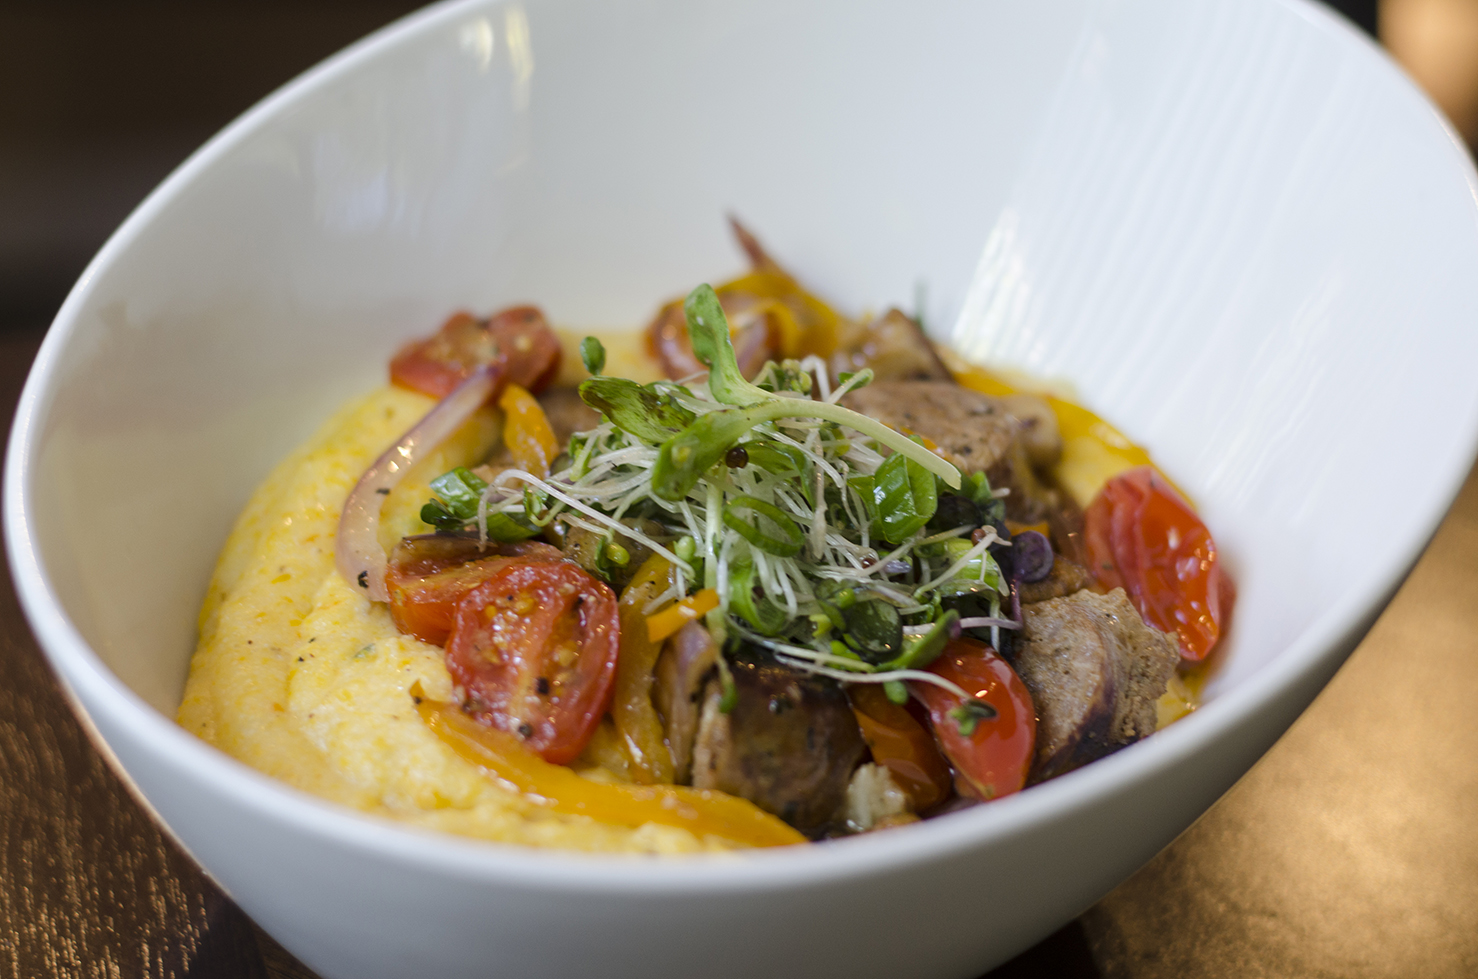 These Autumn grits will warm up your body and soul.